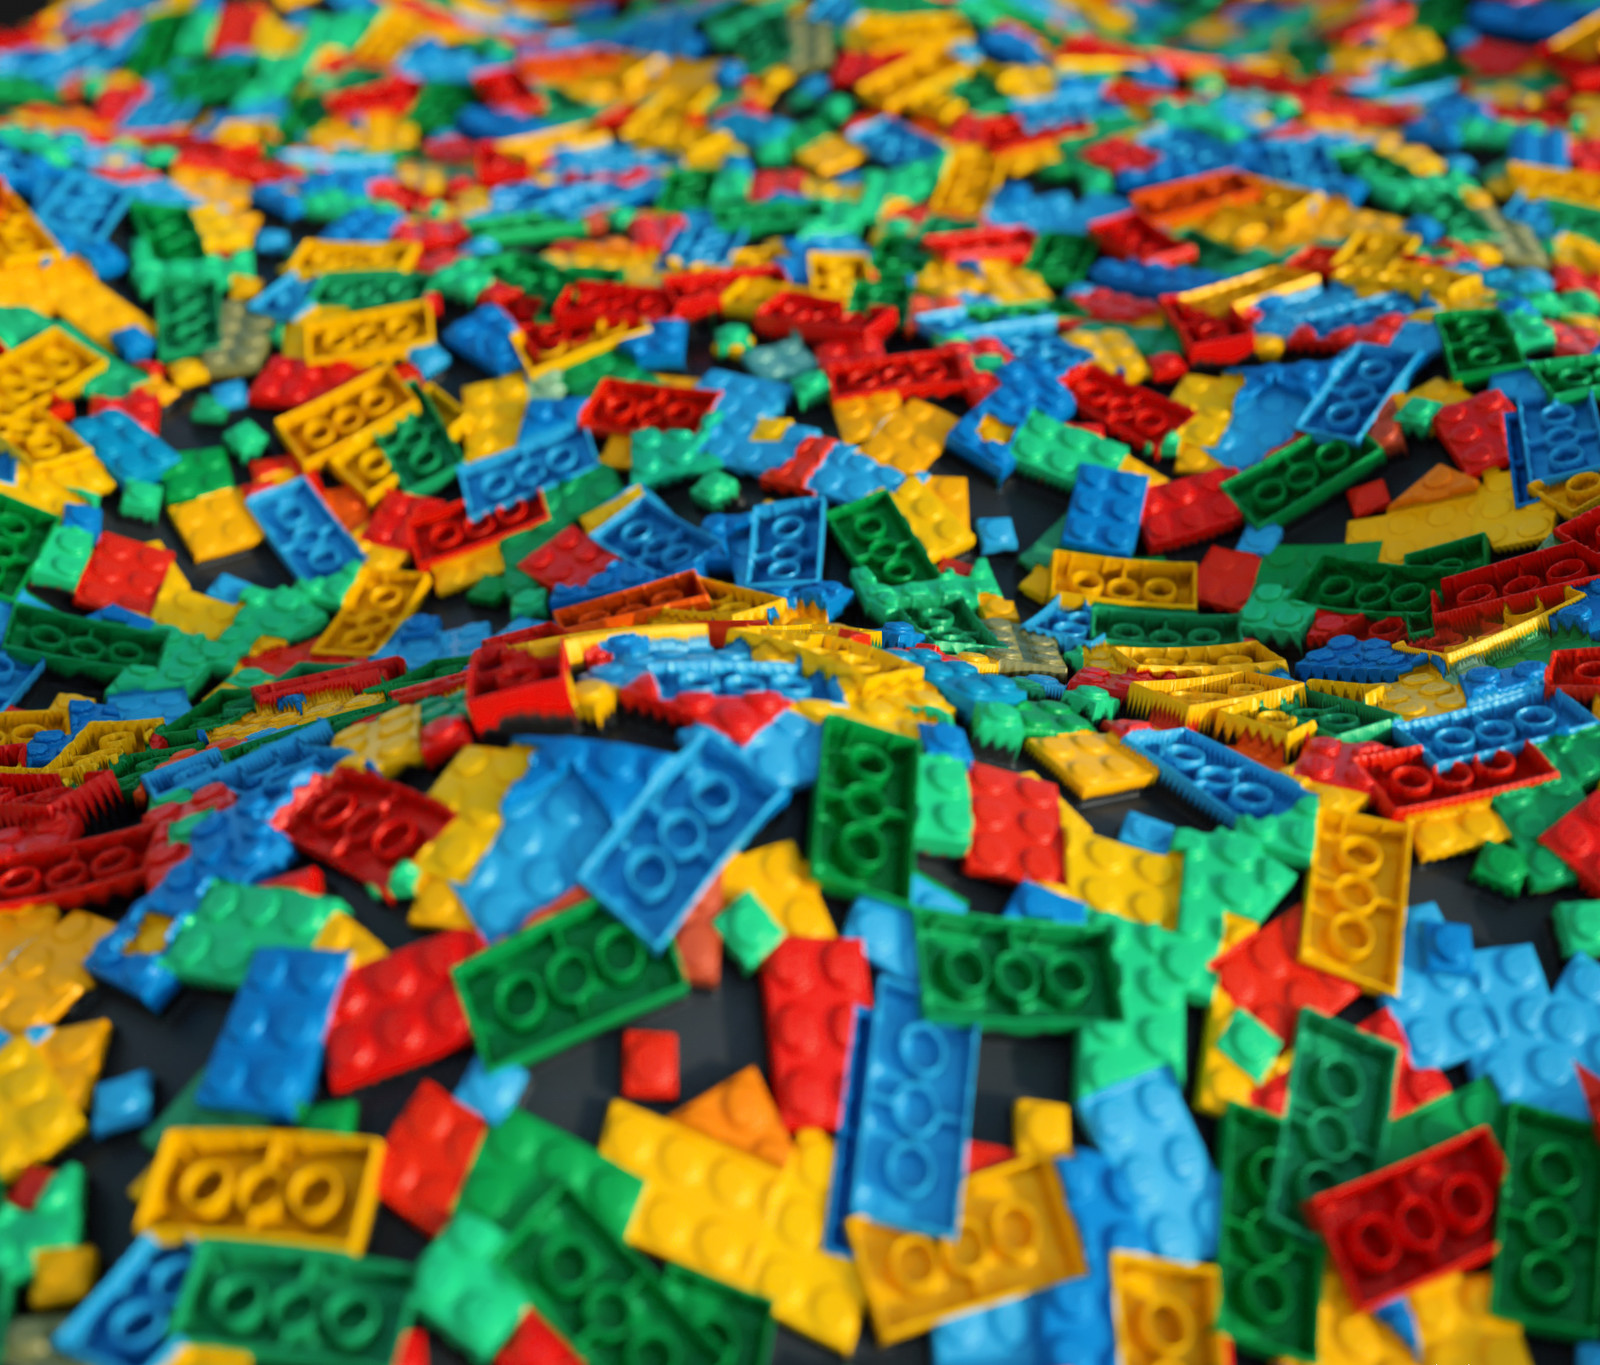 Lot of jaggies and of course bended legos. :)